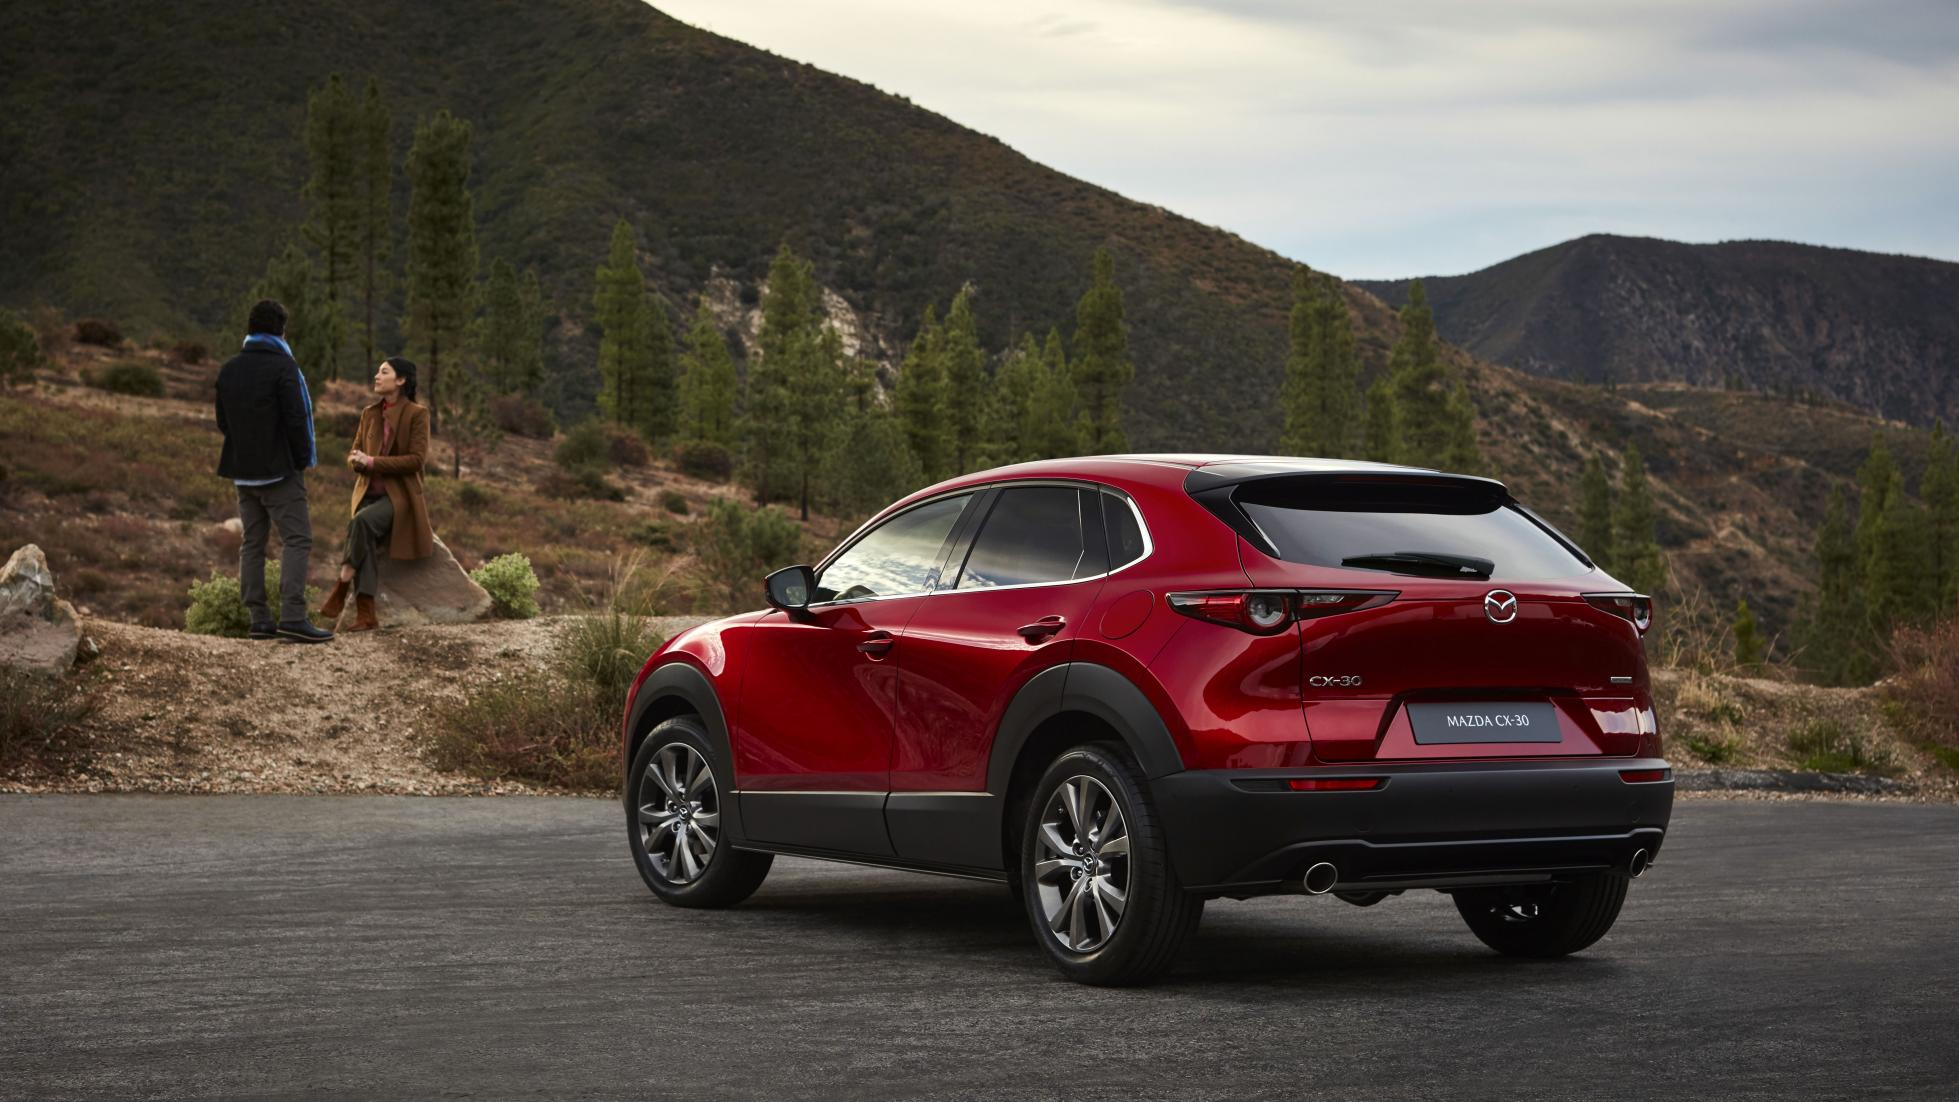 https://fellner.mazda.at/wp-content/uploads/sites/56/2019/09/mazda_cx-30_10.jpg